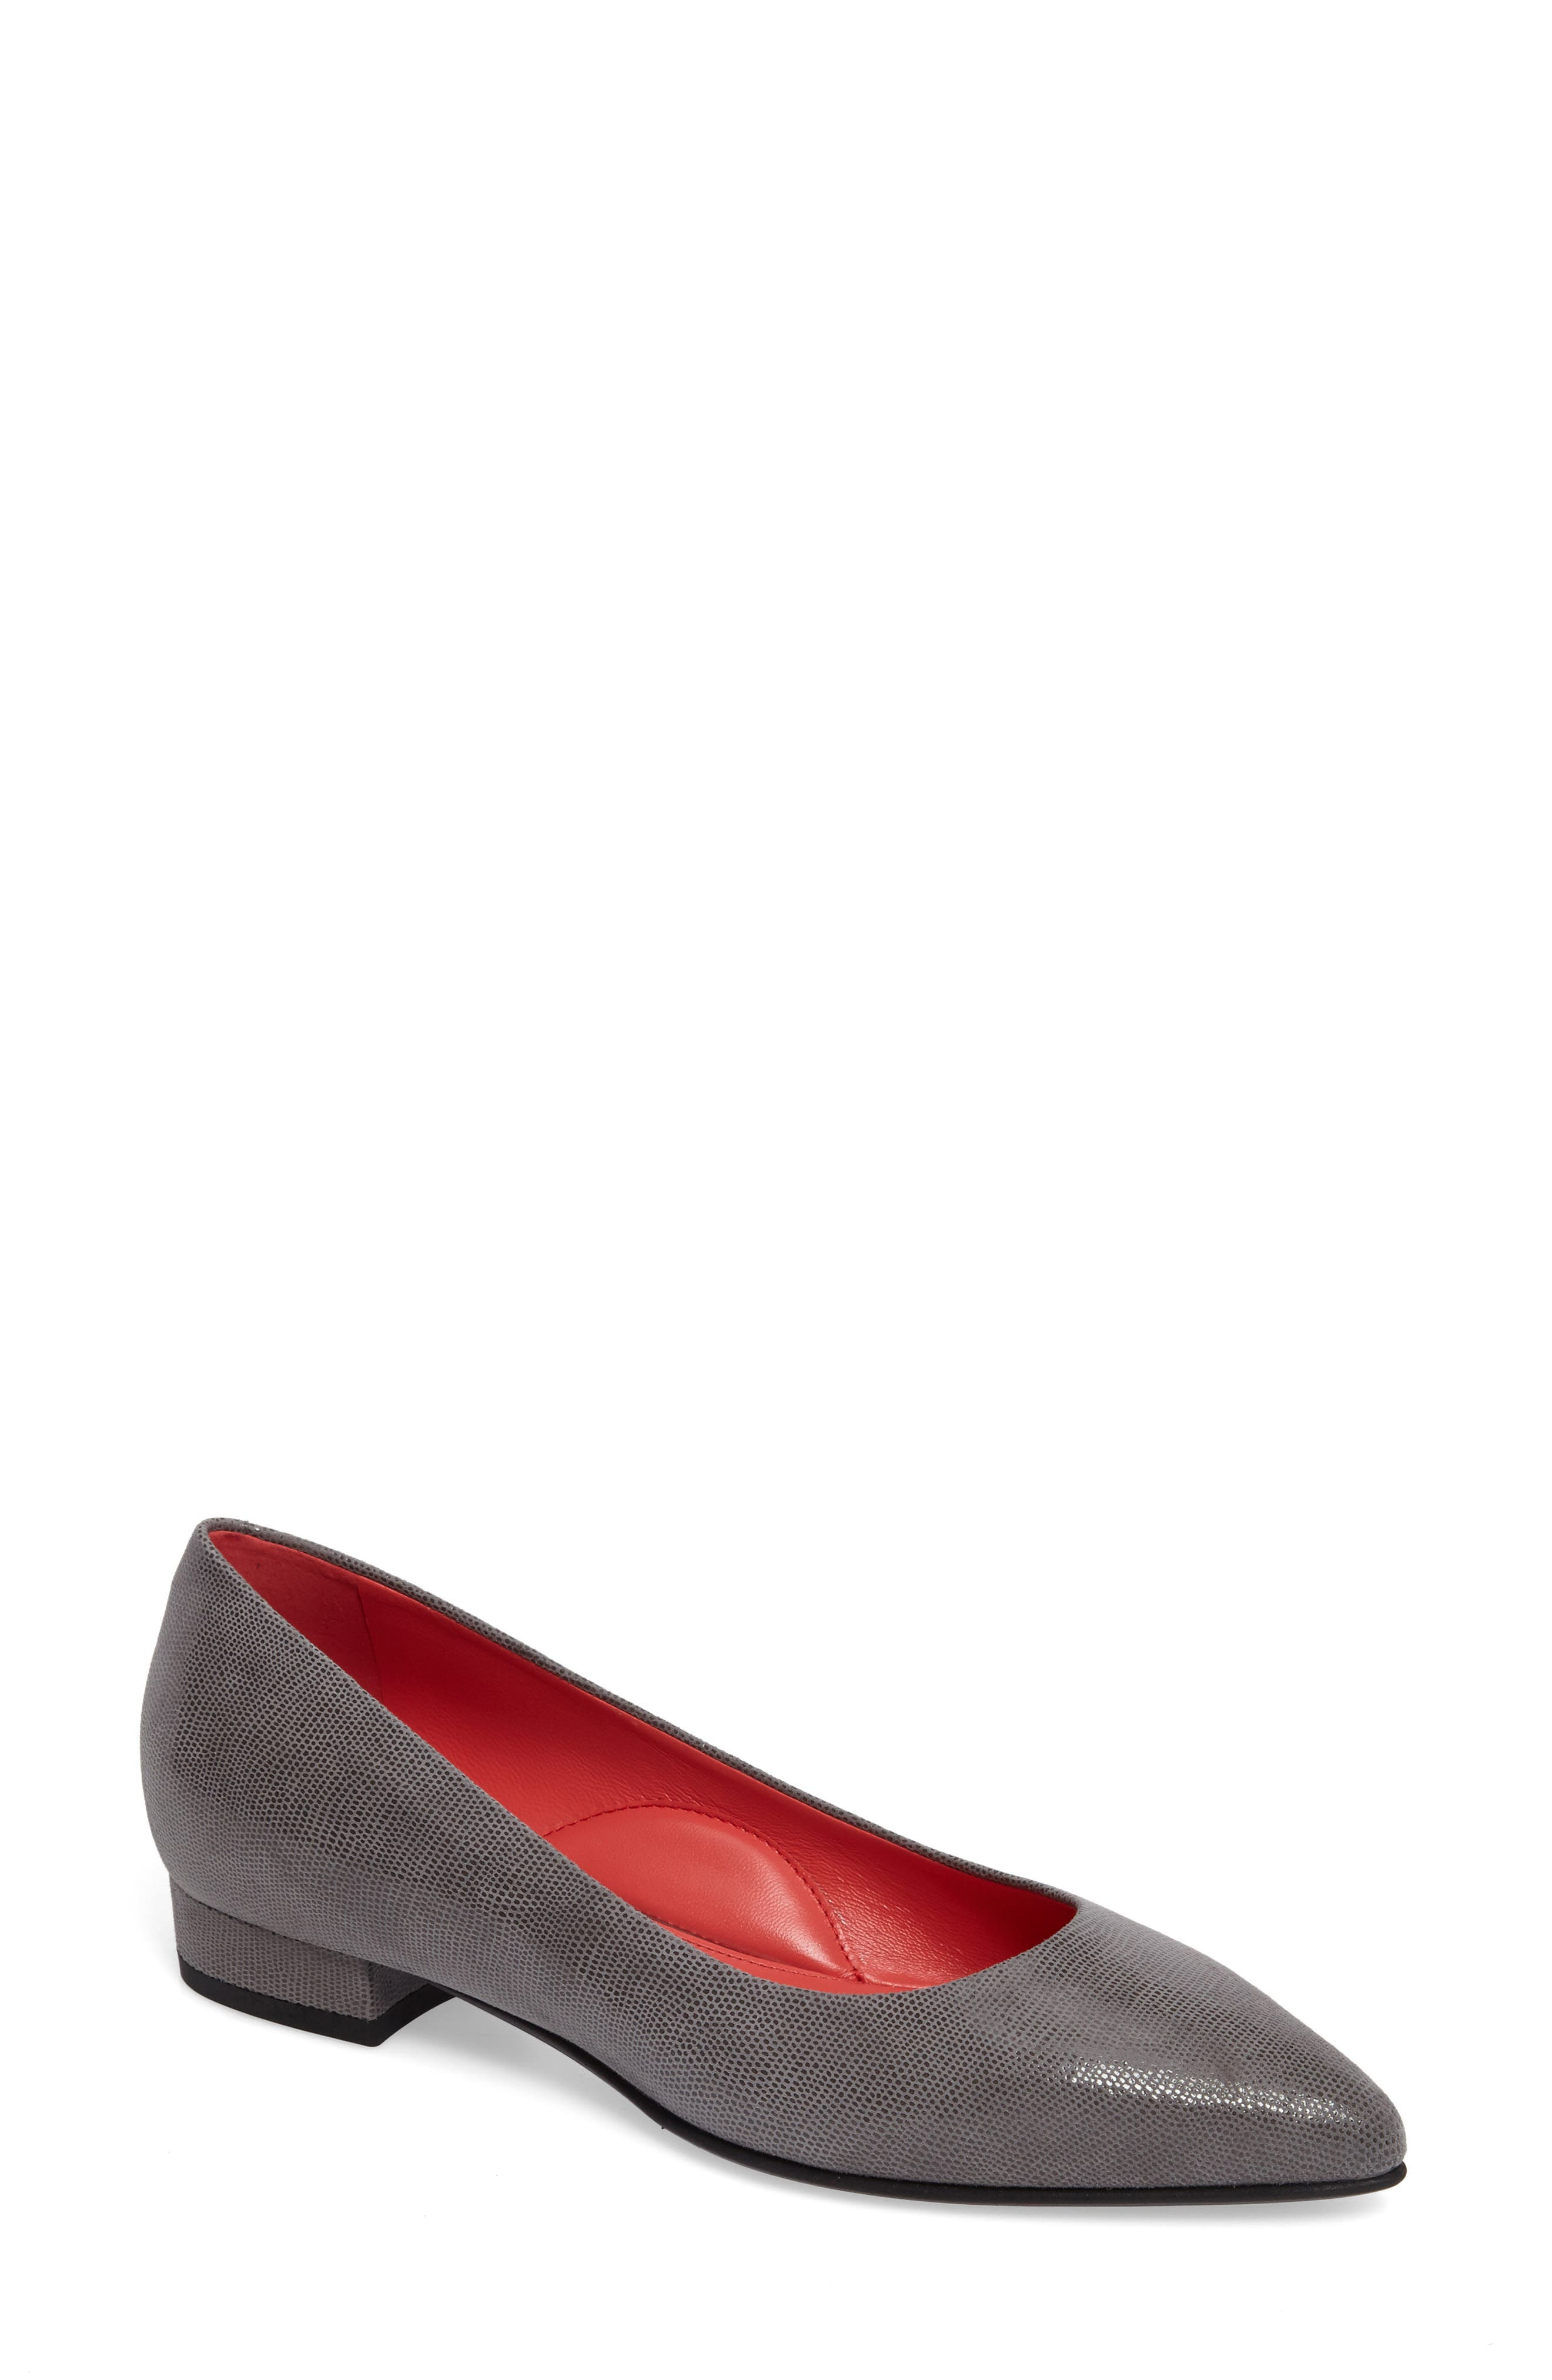 Pas de Rouge Pointy Toe Low Pump (Women)